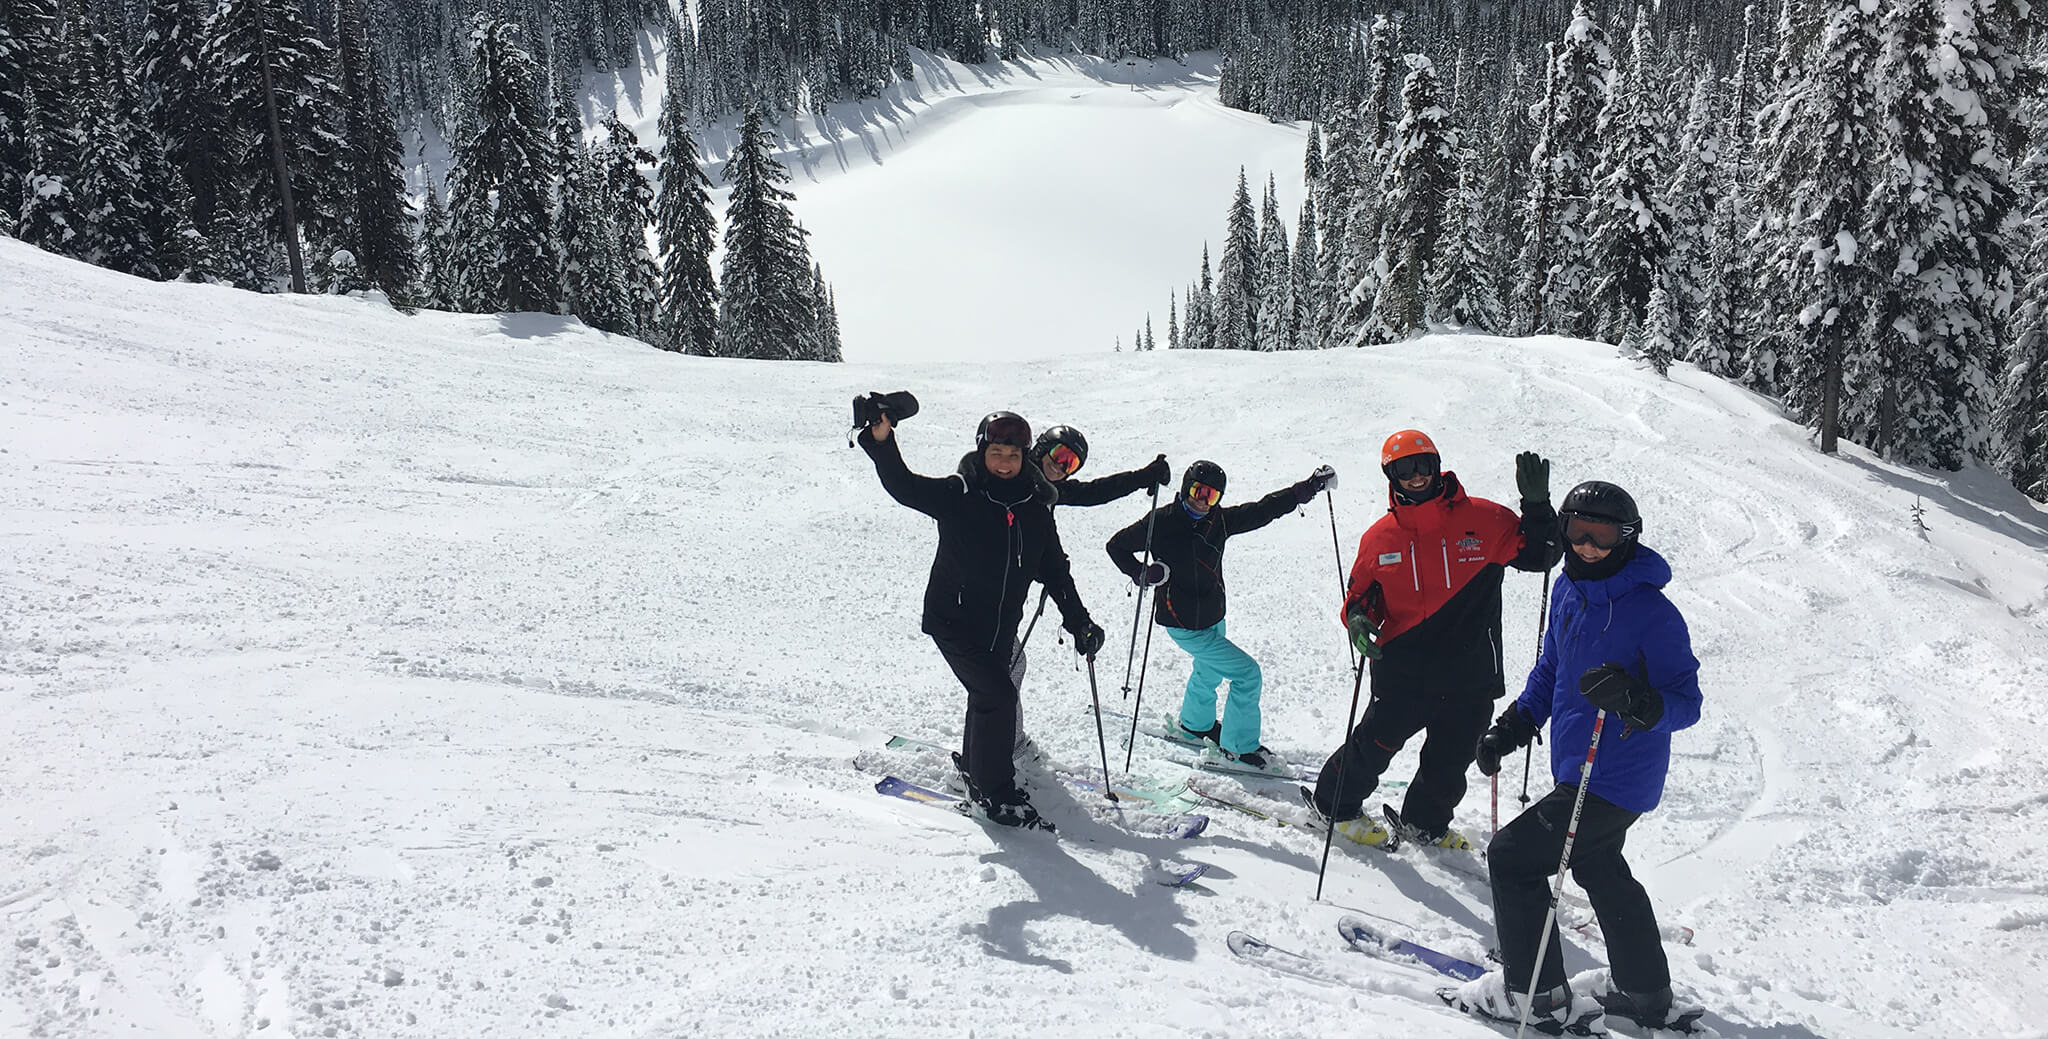 Skiers having fun at Big White Ski Resort